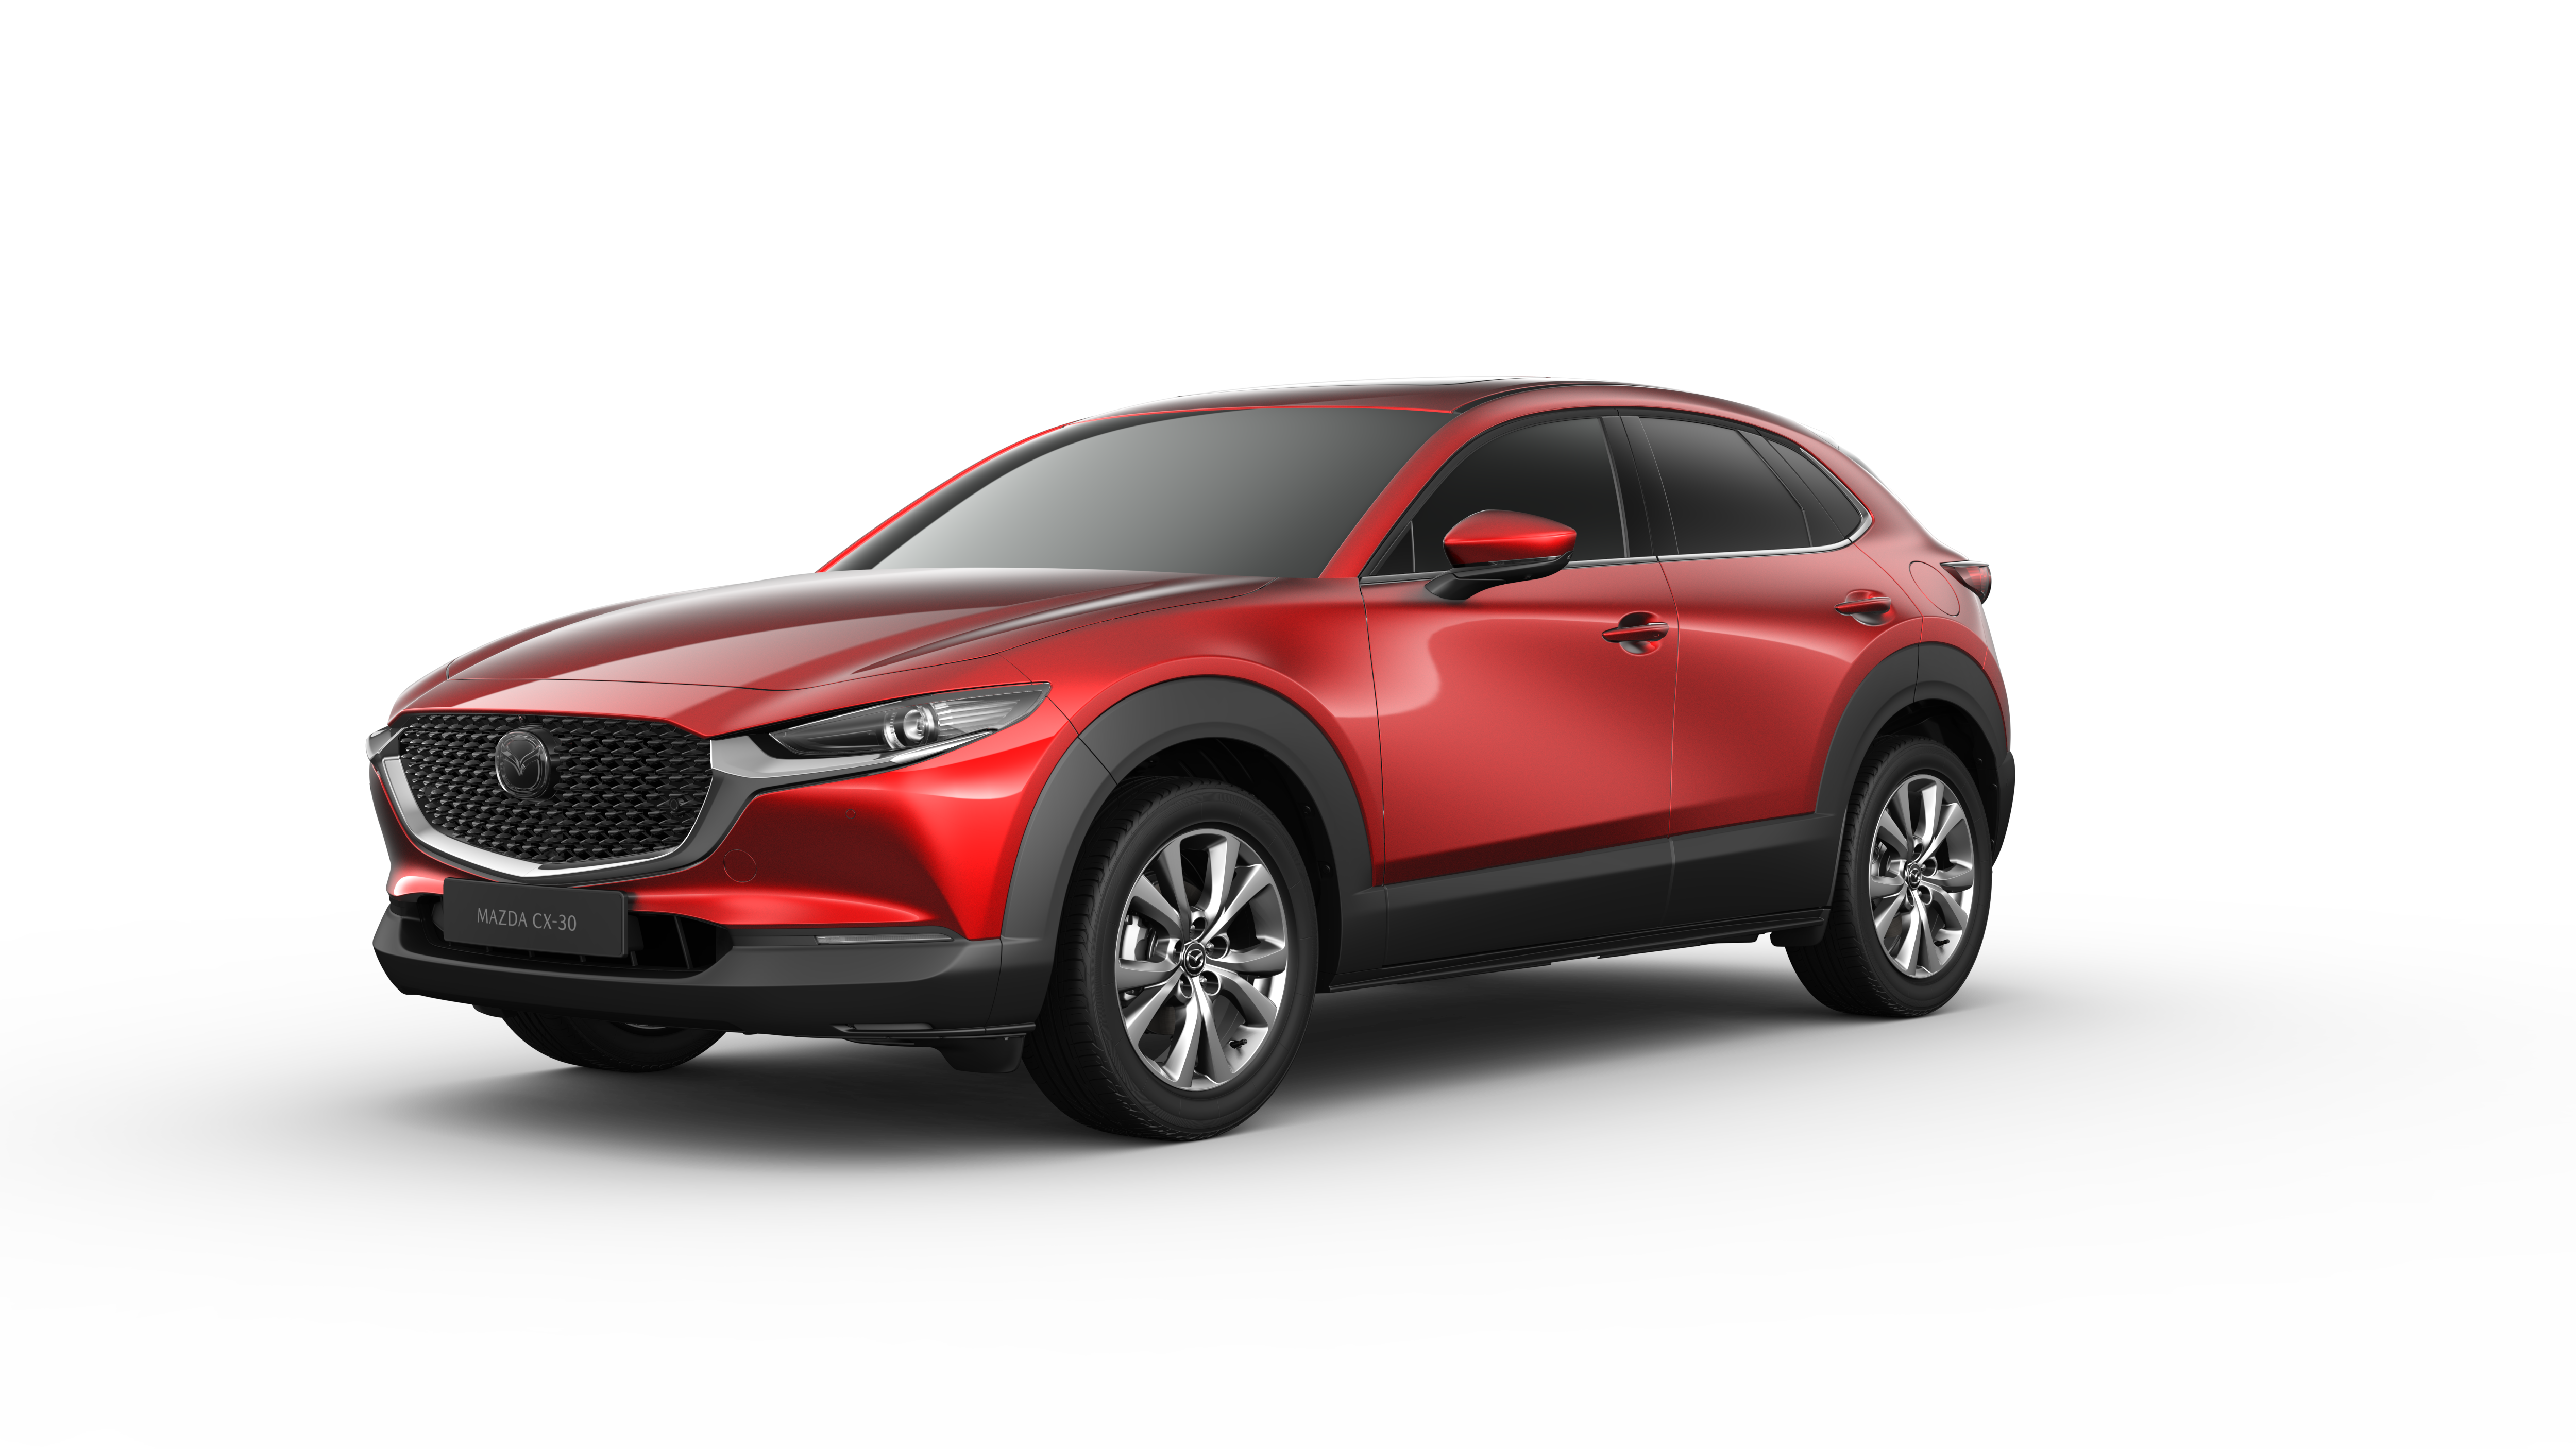 cx-30_dml1_dgb6lak_46v_d1r_ext_high_tran